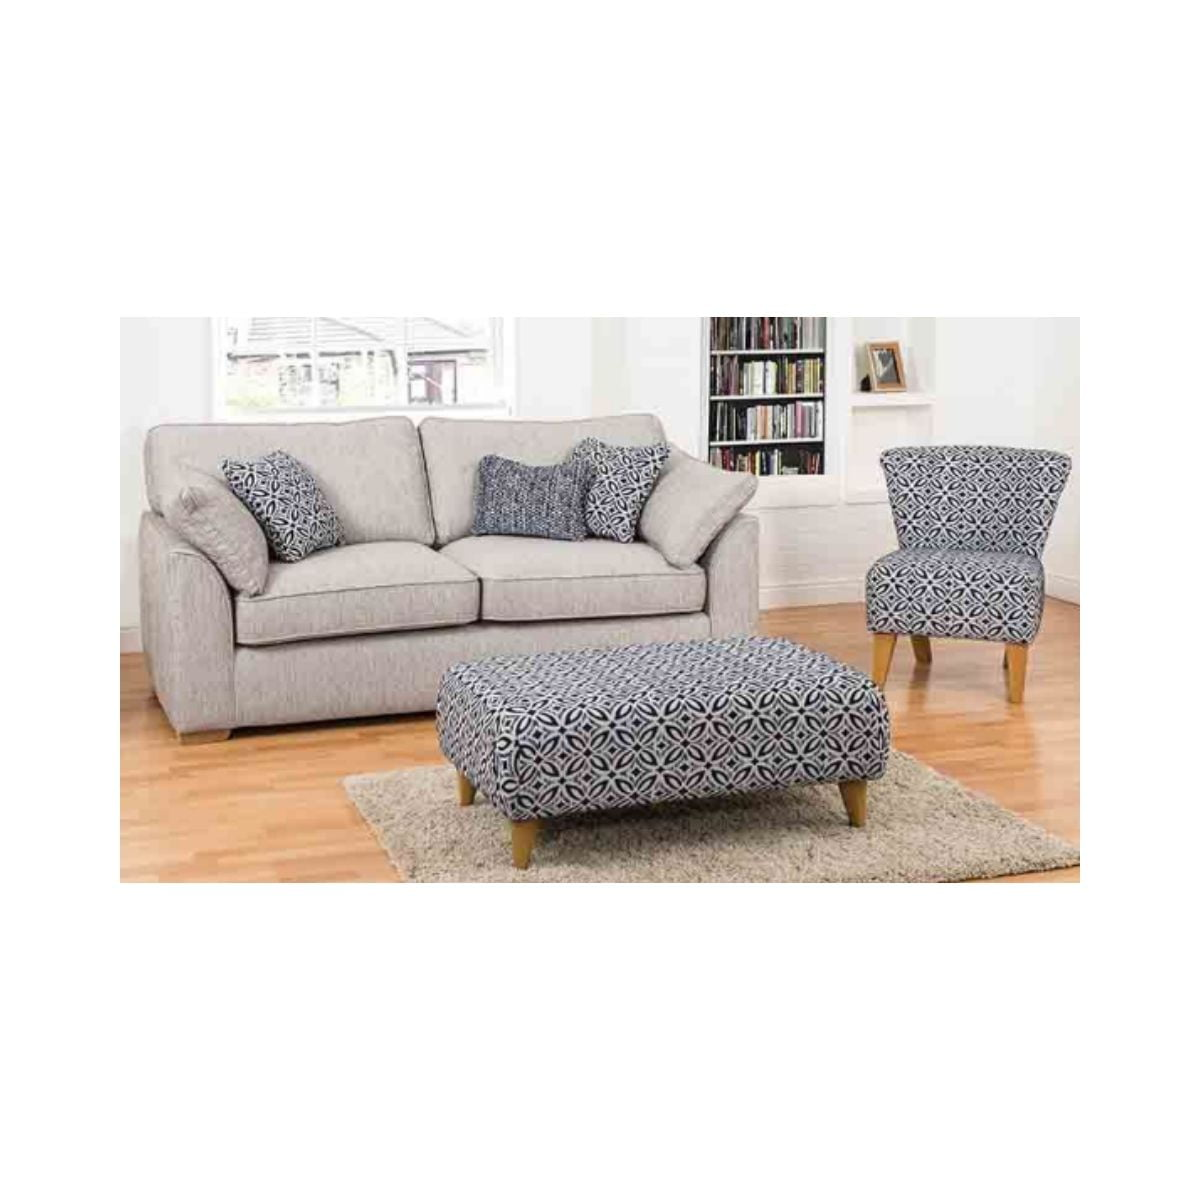 Loretta 3 Seater Sofa